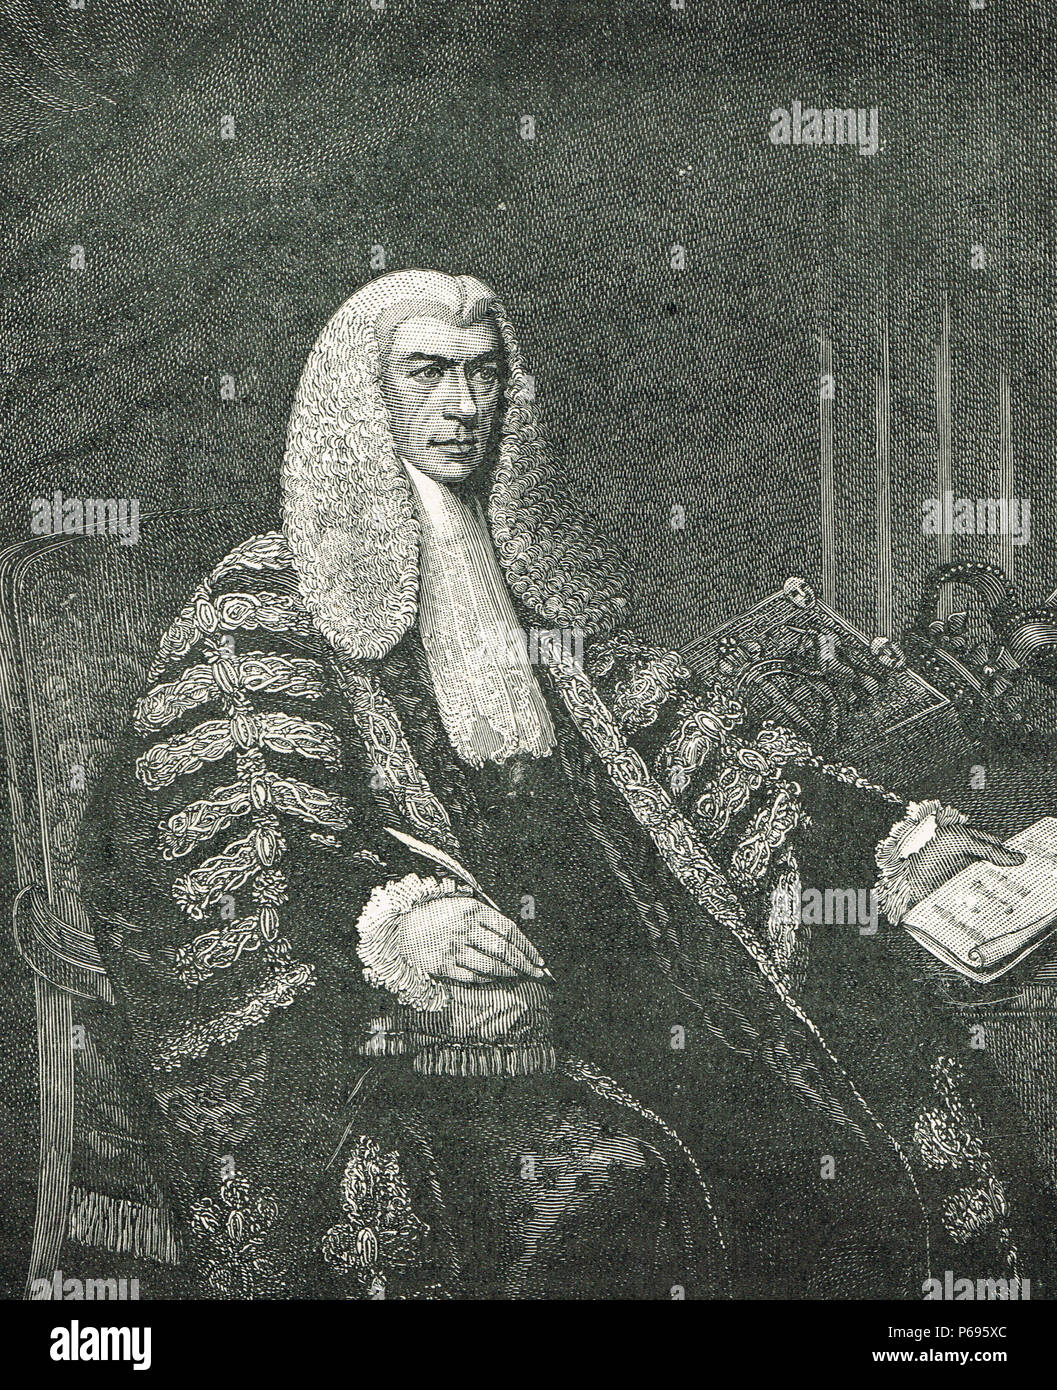 Henry Peter Brougham, 1st Baron Brougham and Vaux, British statesman, Lord Chancellor of Great Britain - Stock Image